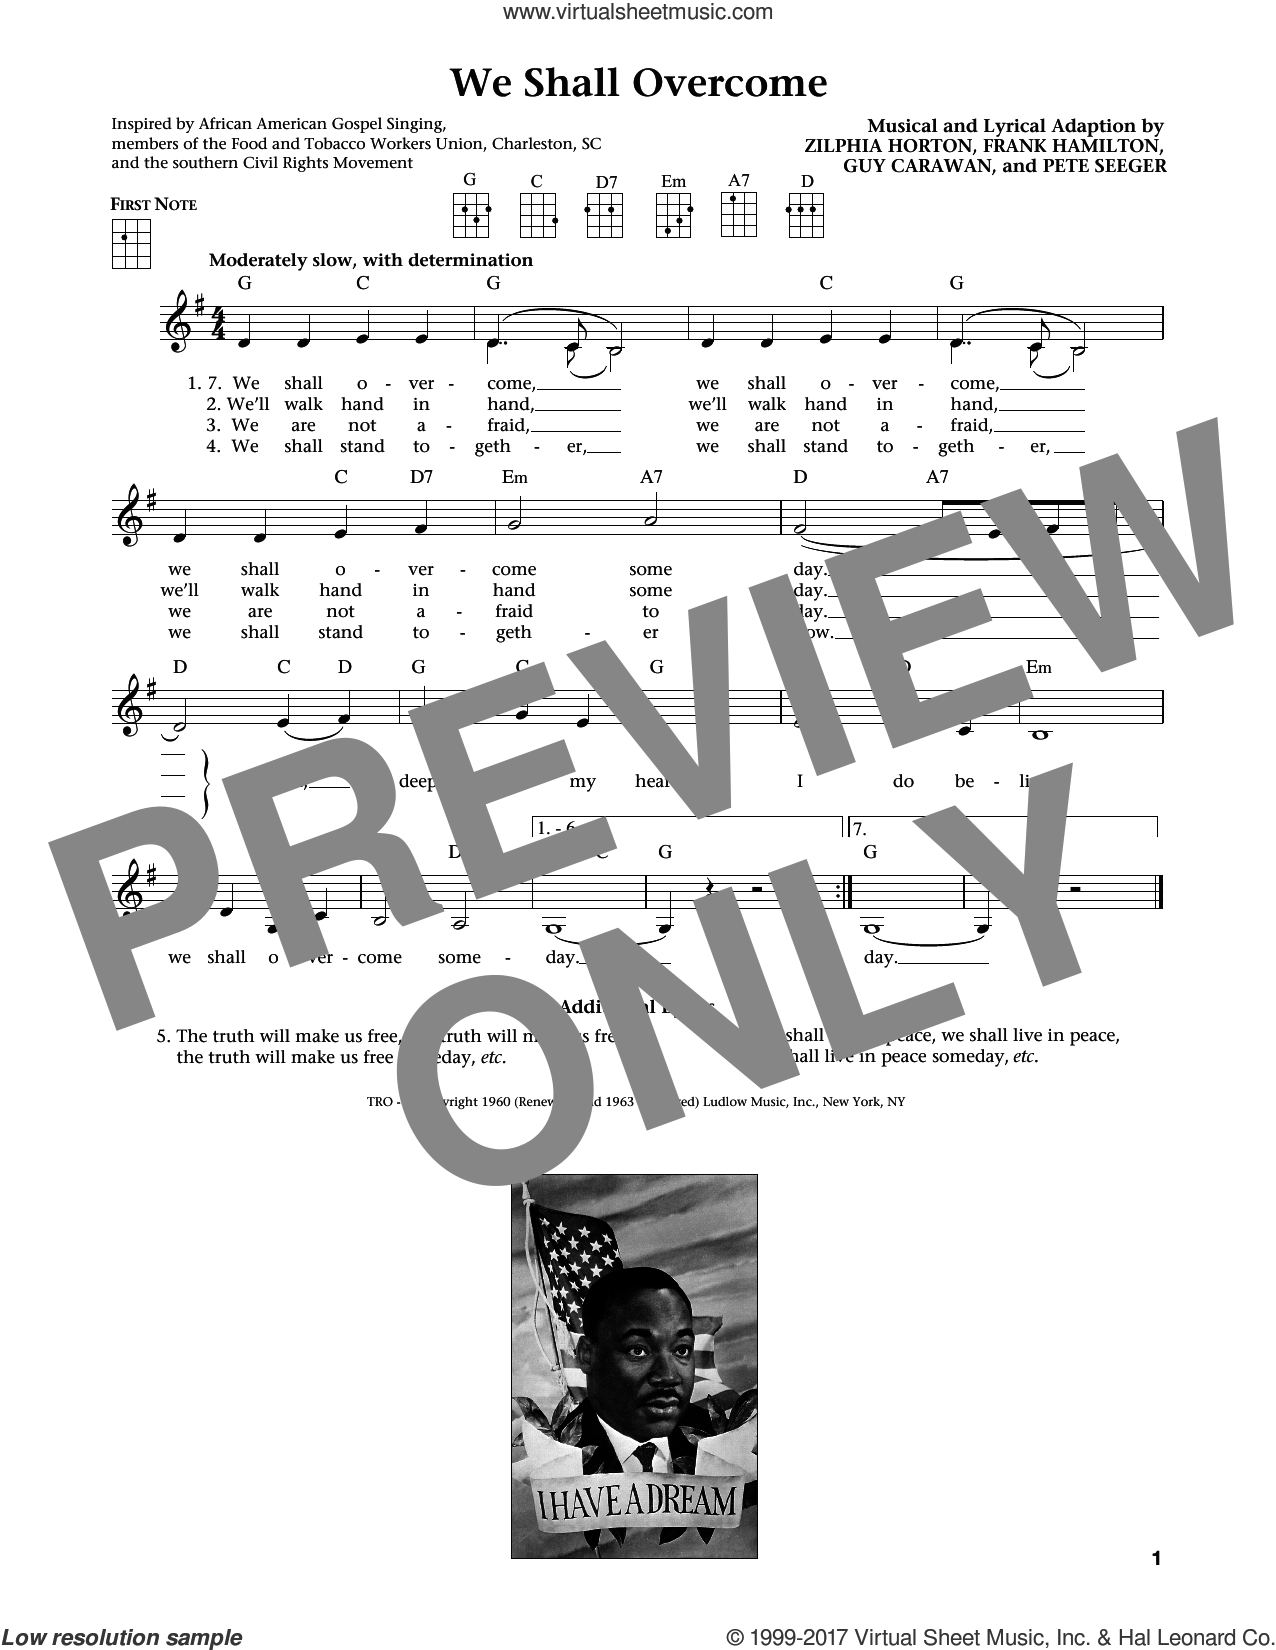 We Shall Overcome sheet music for ukulele by Pete Seeger, Jim Beloff, Joan Baez, Liz Beloff, Peter, Paul & Mary, Frank Hamilton, Guy Carawan and Zilphia Horton, intermediate skill level